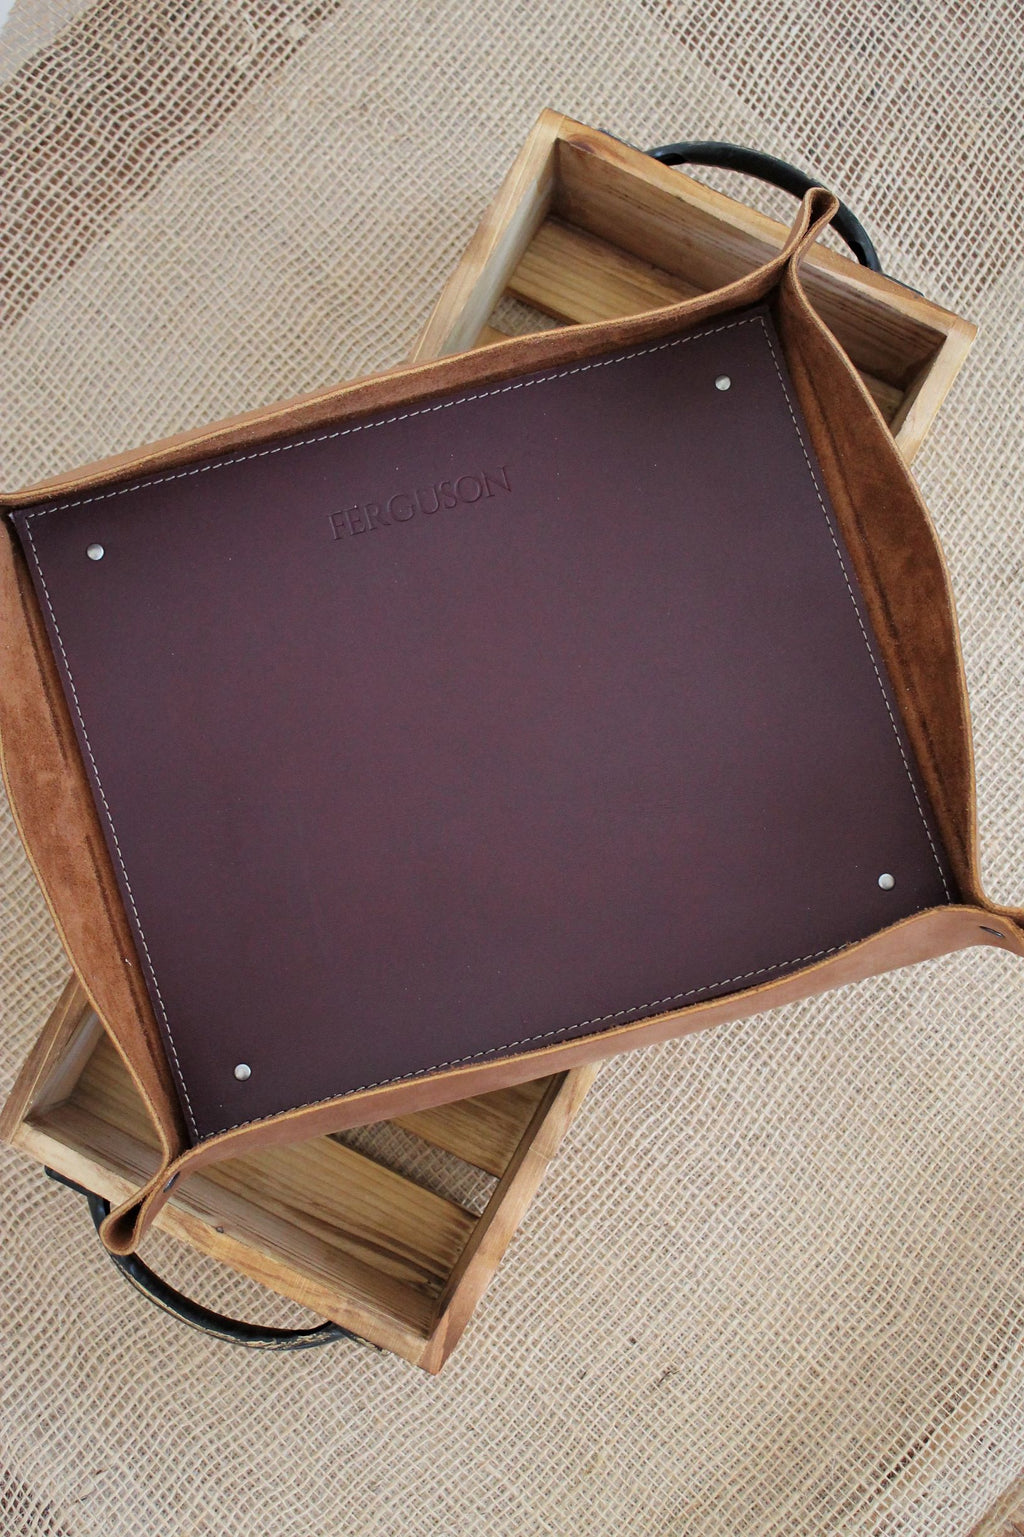 Leather store: Monogrammed Leather Storage Tray for Ottoman